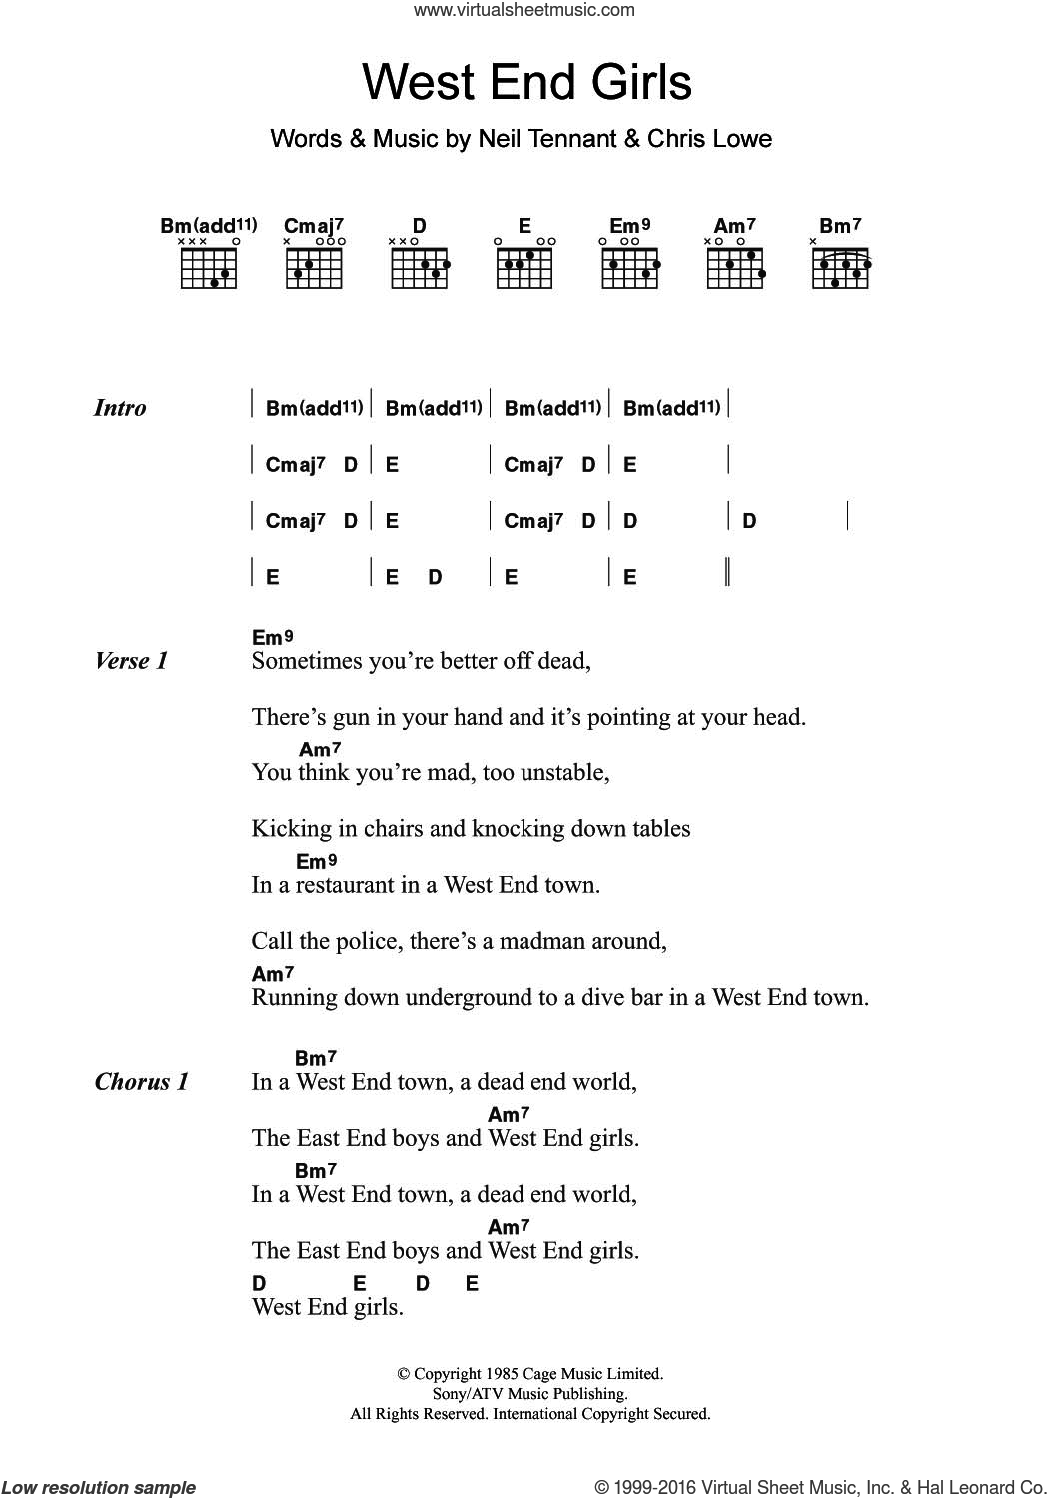 West End Girls sheet music for guitar (chords) by Pet Shop Boys, Chris Lowe and Neil Tennant, intermediate skill level